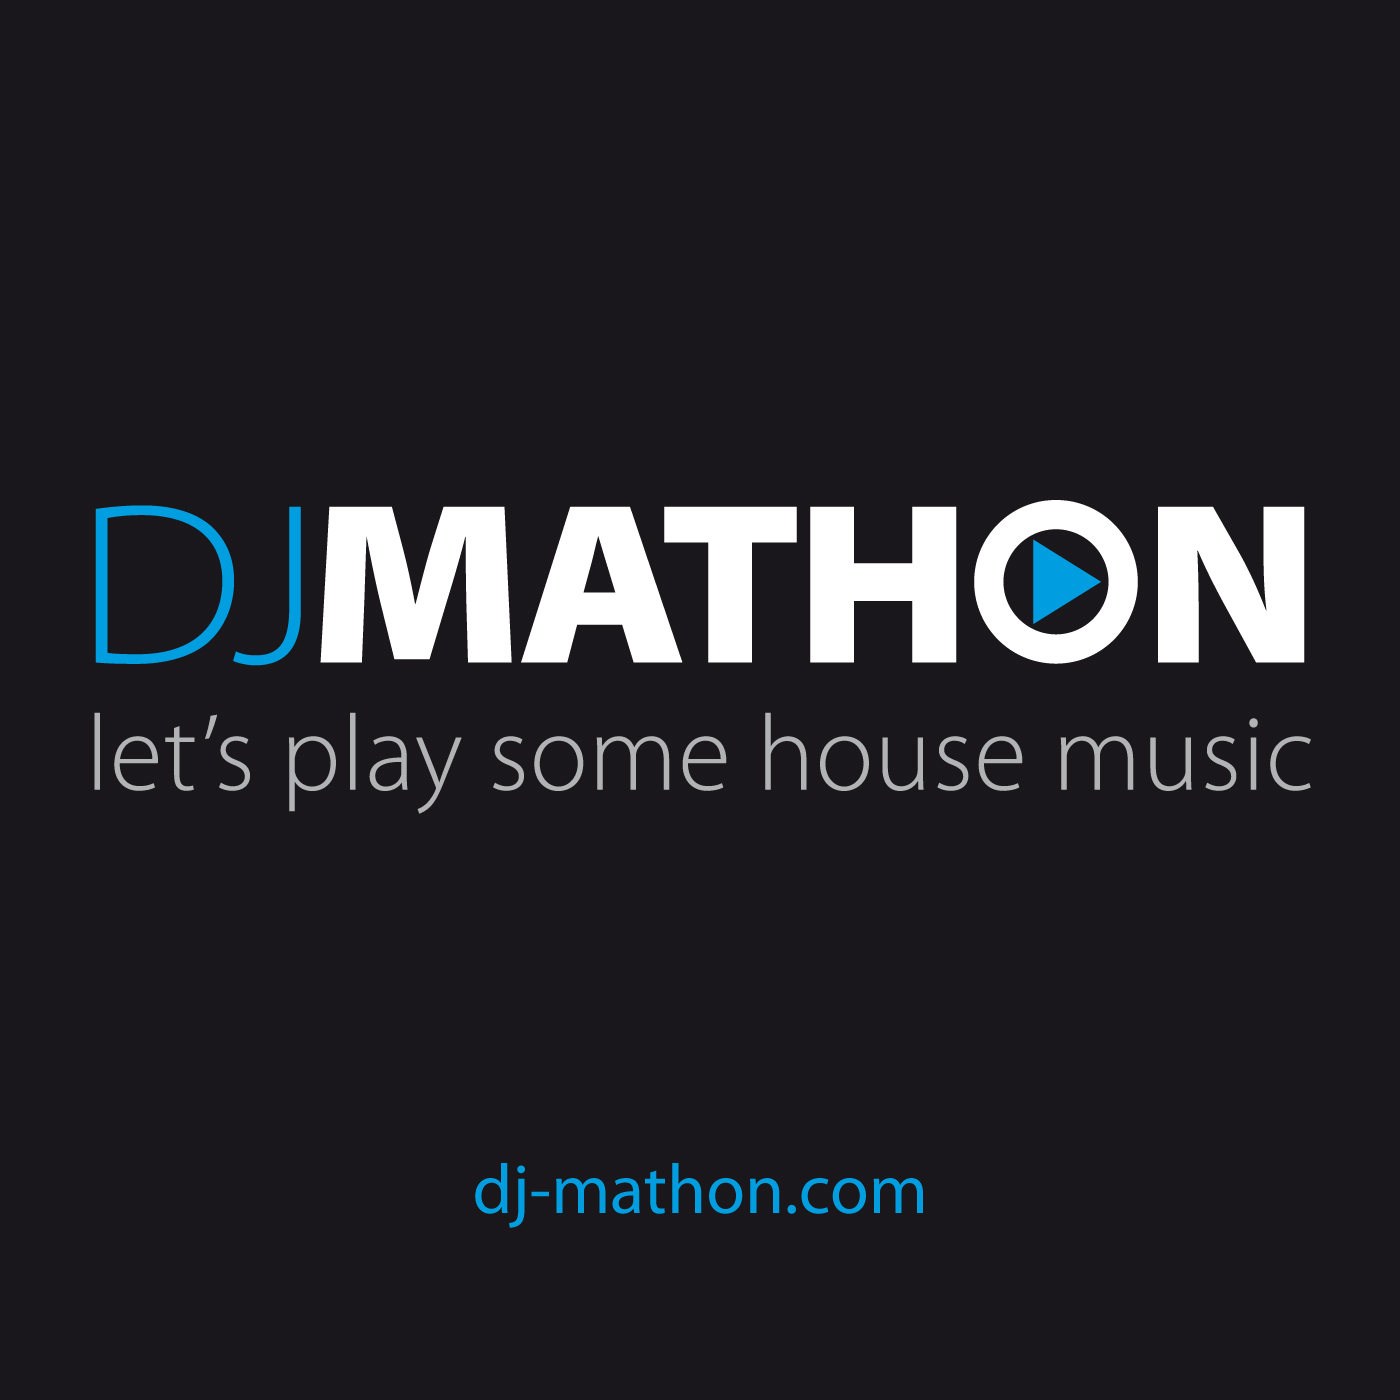 55 DJ MATHON IN THE HOUSE PODCAST 55